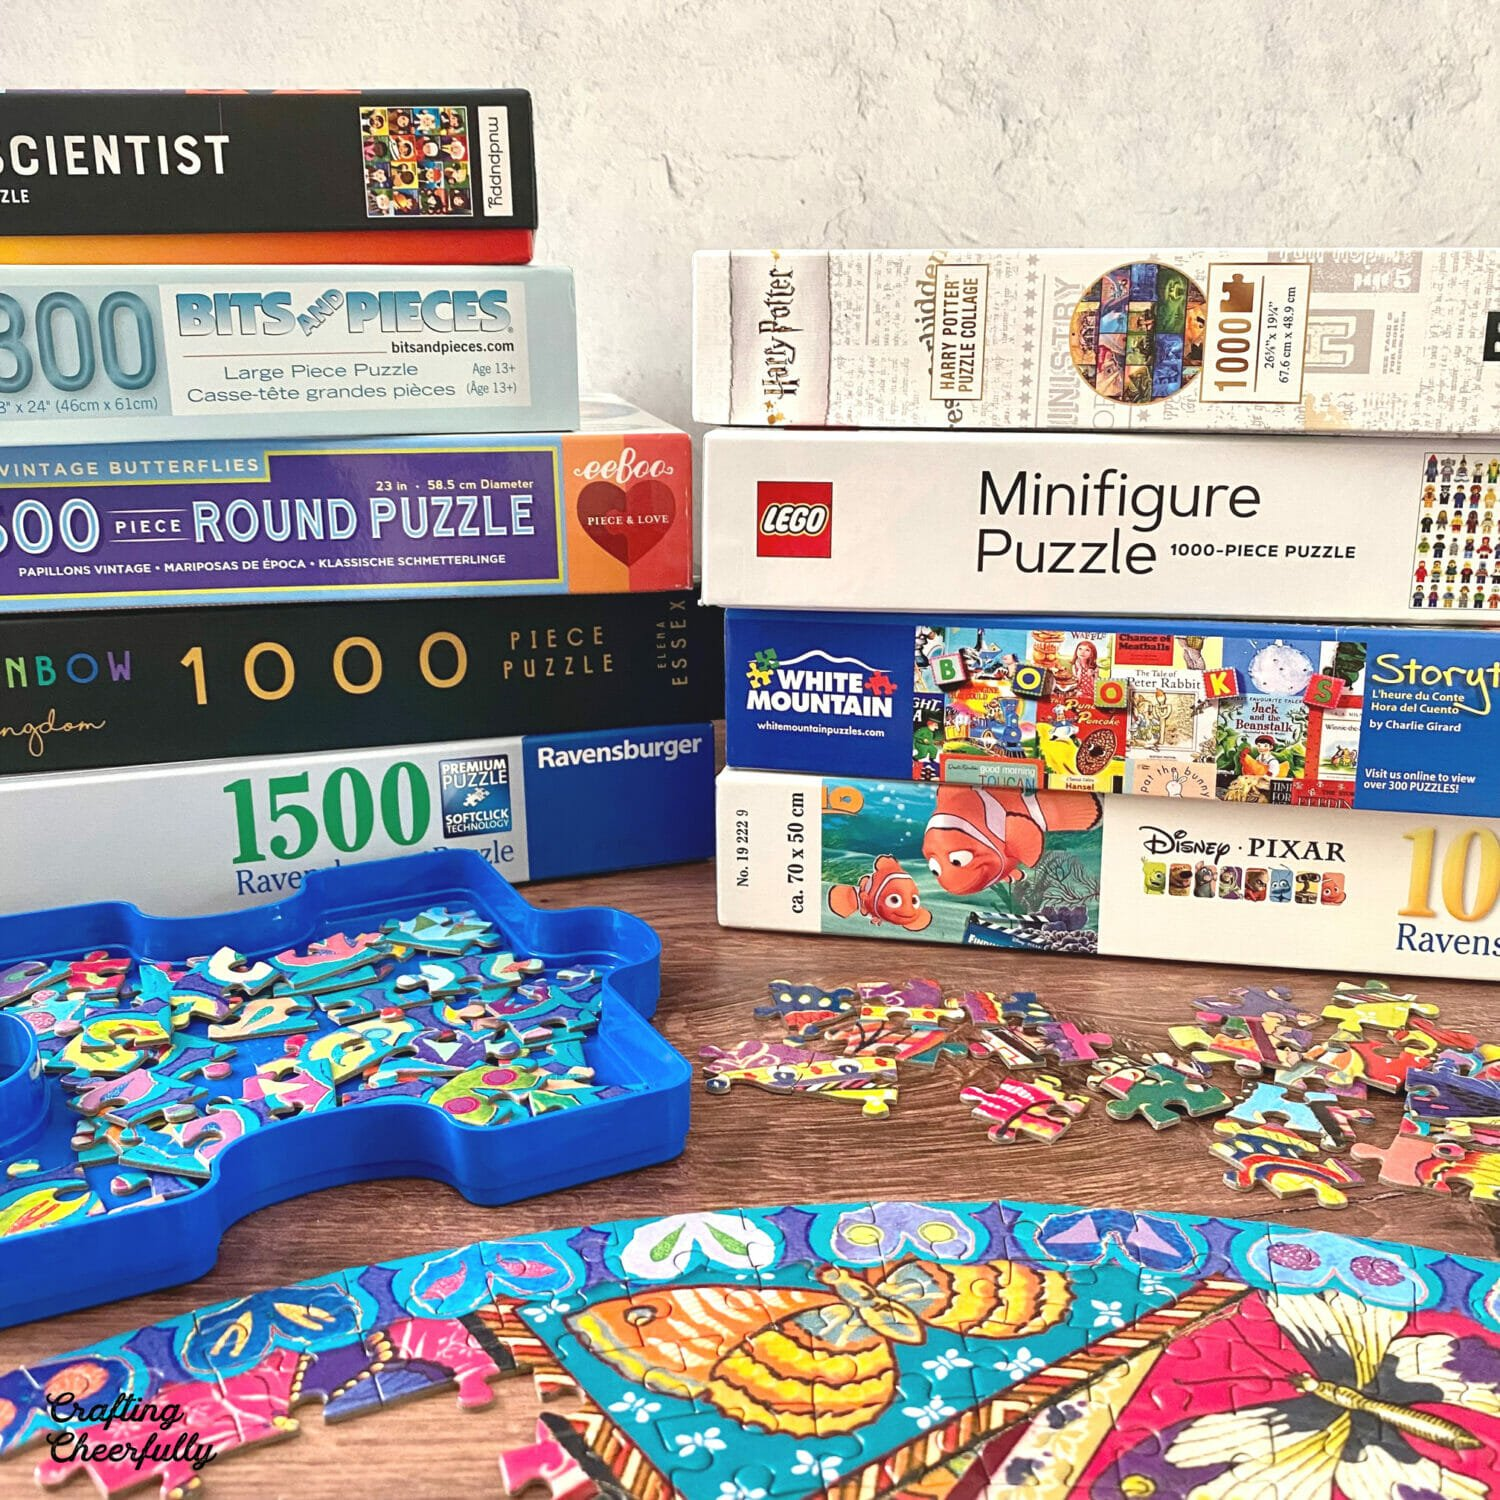 Family puzzles stacked up in a pile.